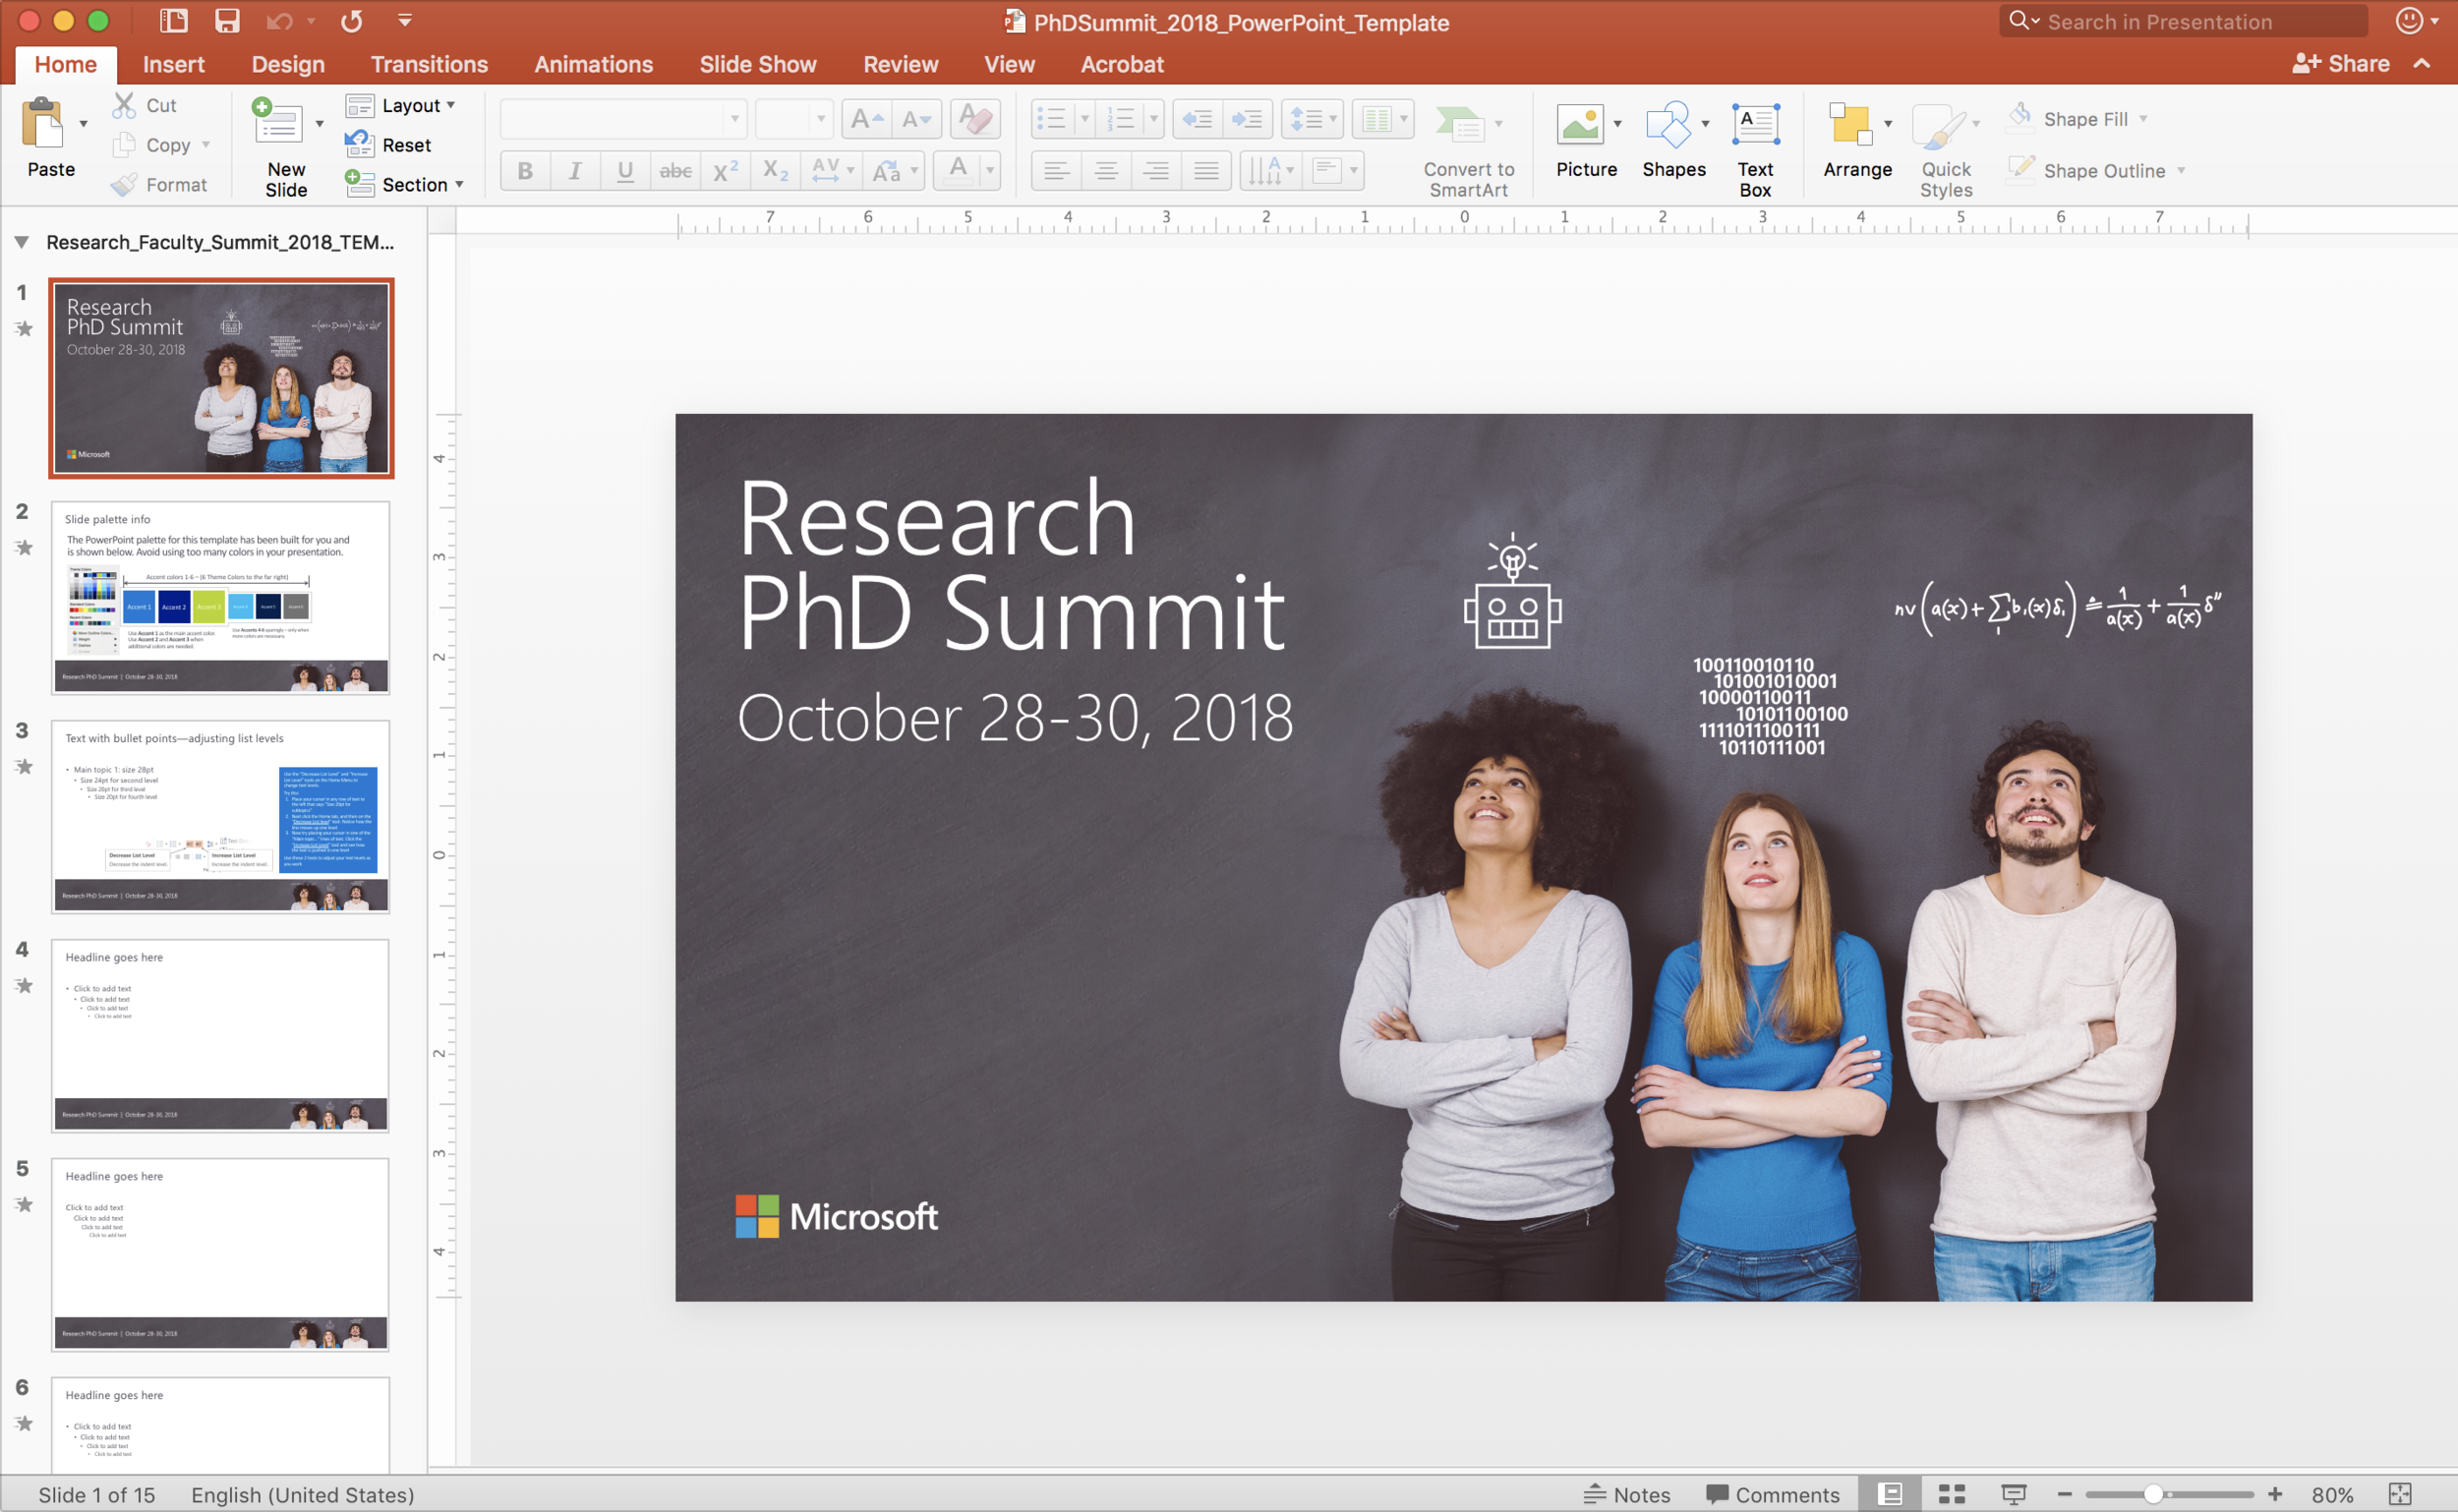 2018 PhD Summit PowerPoint brand guidelines template.